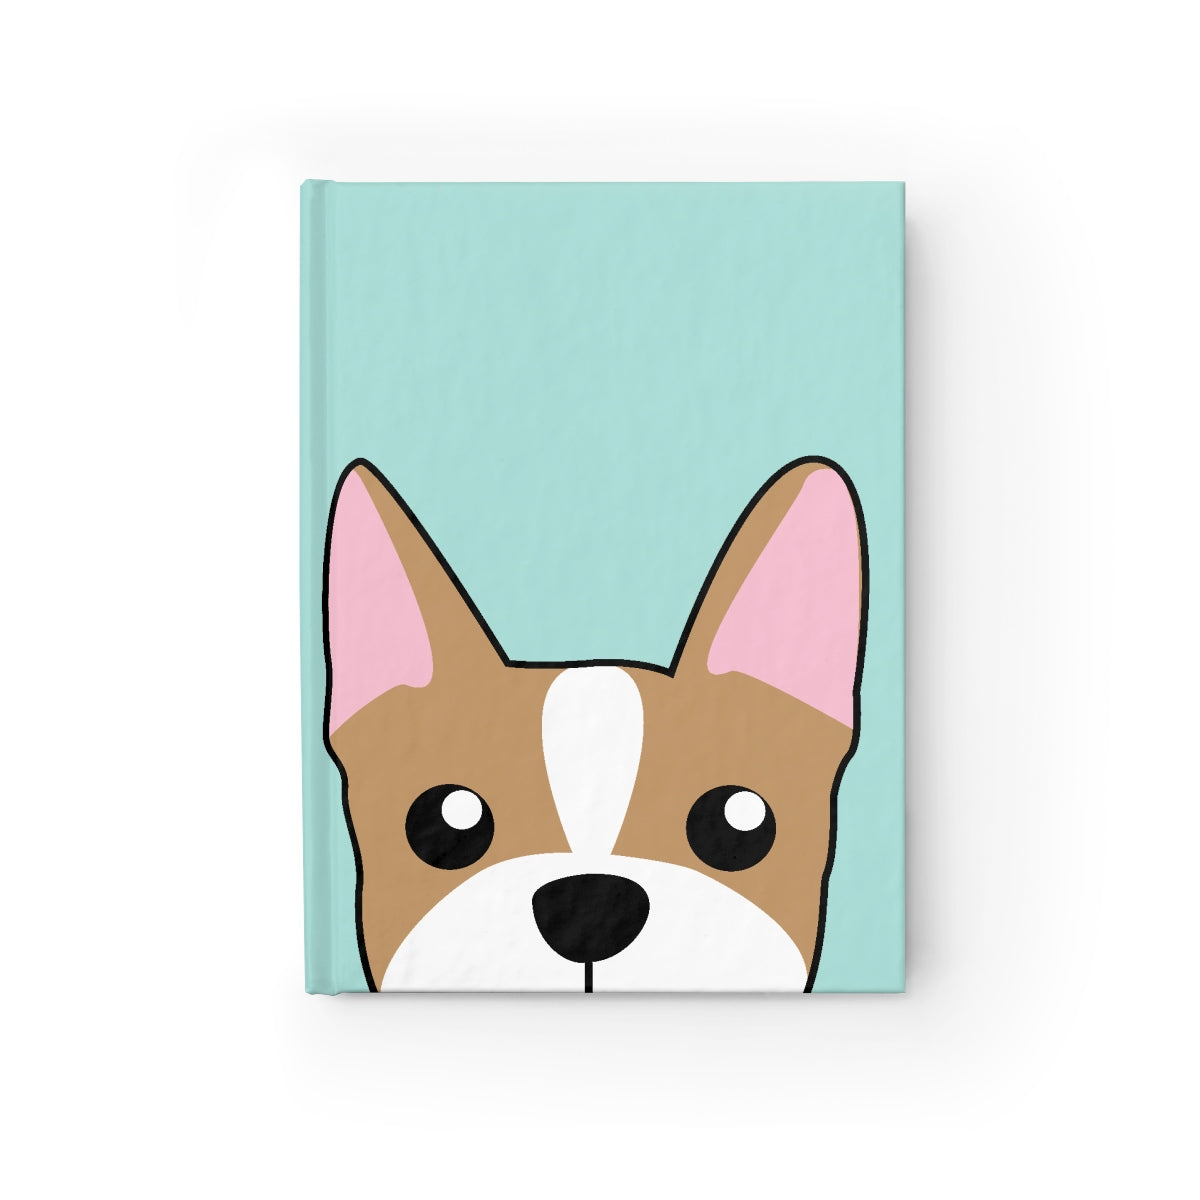 Frenchie Paw Prints Journal - Ruled Line